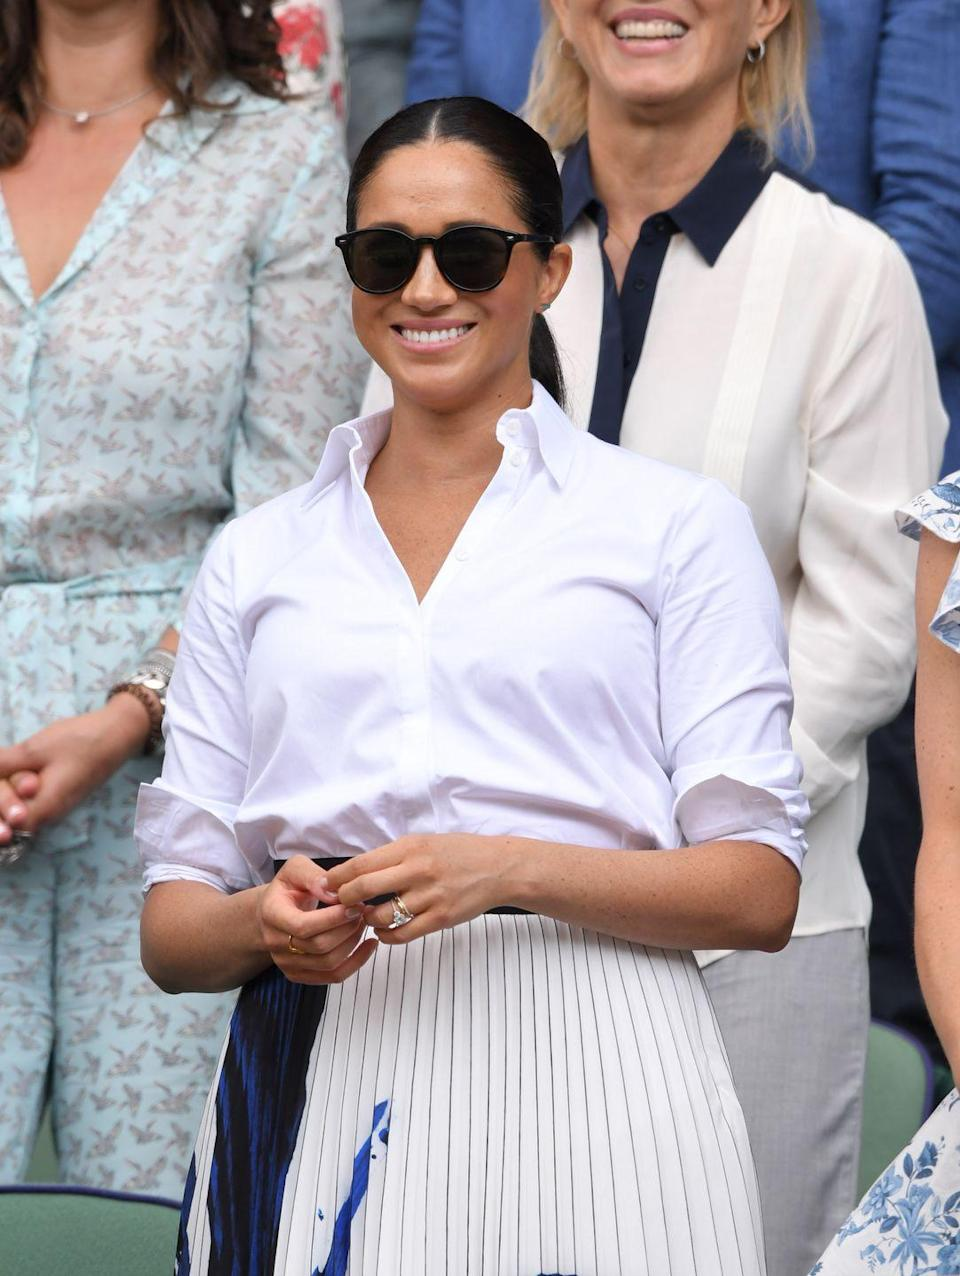 """<p>Meghan also wore a Givenchy button-down and skirt to attend Wimbledon in 2019. Shop a similar style below. </p><p><a class=""""link rapid-noclick-resp"""" href=""""https://go.redirectingat.com?id=74968X1596630&url=https%3A%2F%2Fwww.farfetch.com%2Fca%2Fshopping%2Fwomen%2Fgivenchy-bib-long-sleeved-buttoned-shirt-item-14759165.aspx%3Fstoreid%3D9910&sref=https%3A%2F%2Fwww.townandcountrymag.com%2Fsociety%2Ftradition%2Fg36386449%2Fmeghan-markle-white-button-down-shirts%2F"""" rel=""""nofollow noopener"""" target=""""_blank"""" data-ylk=""""slk:Shop now"""">Shop now</a></p>"""